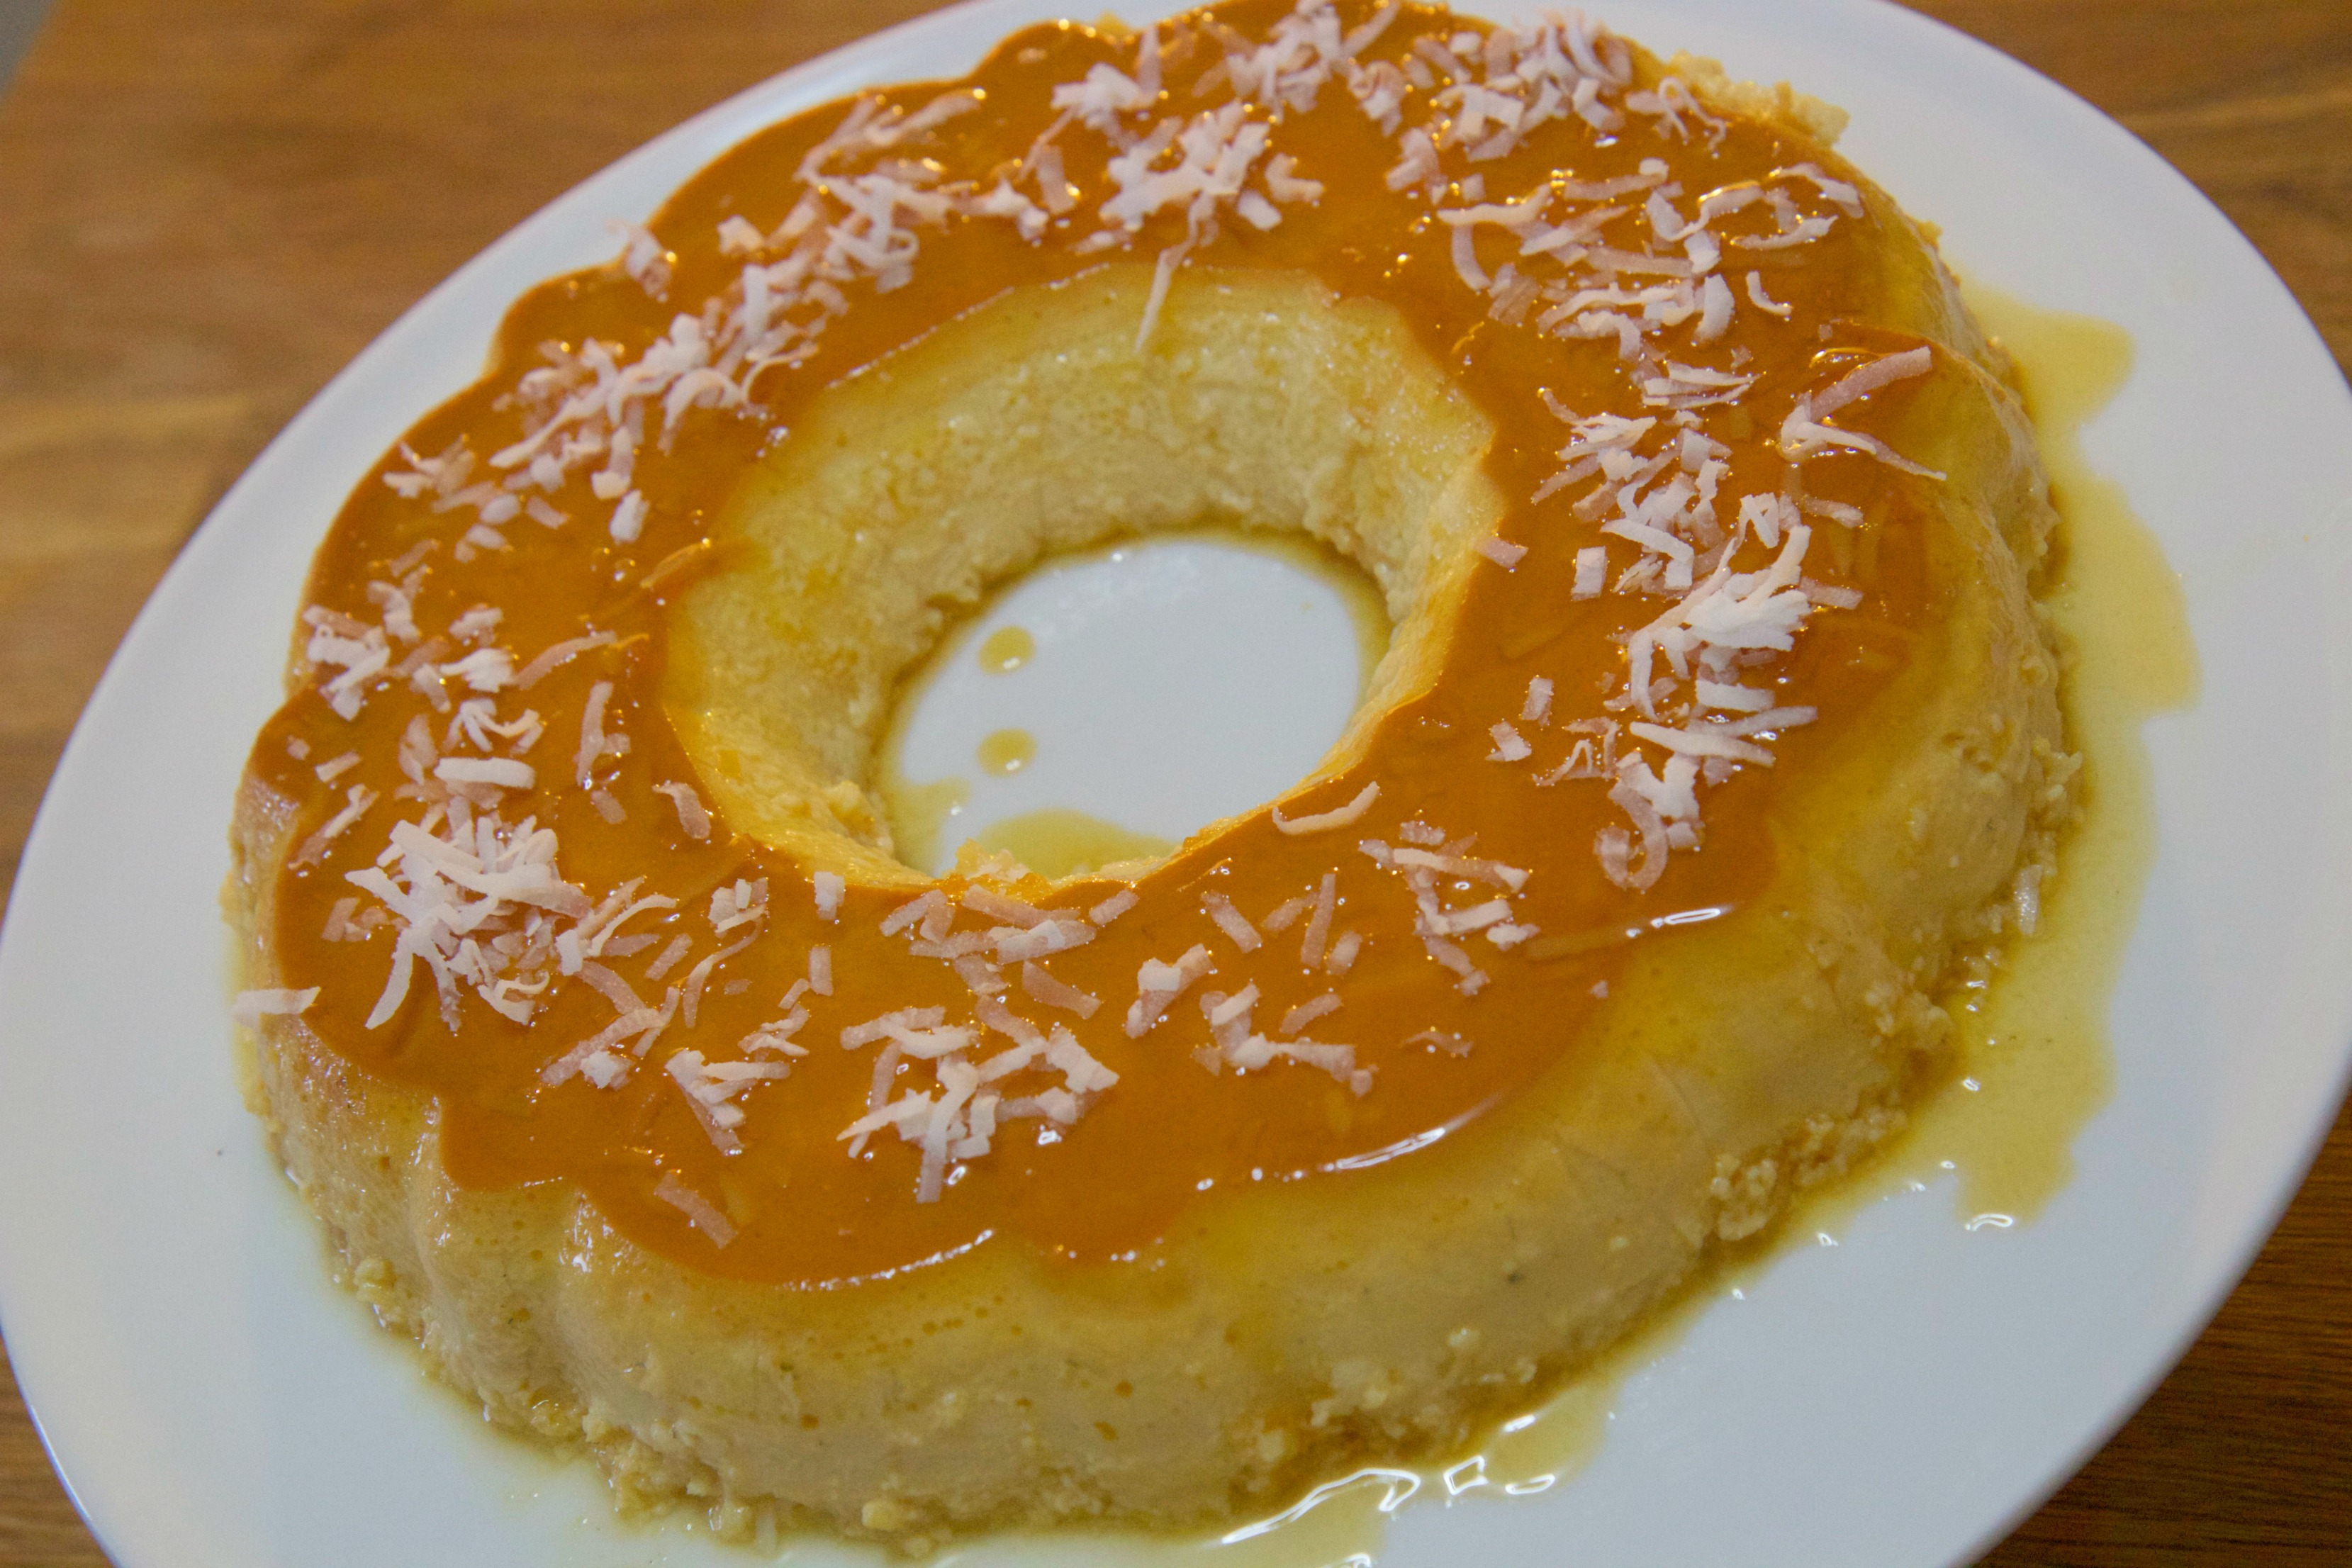 Coconut flan topped with shredded coconut